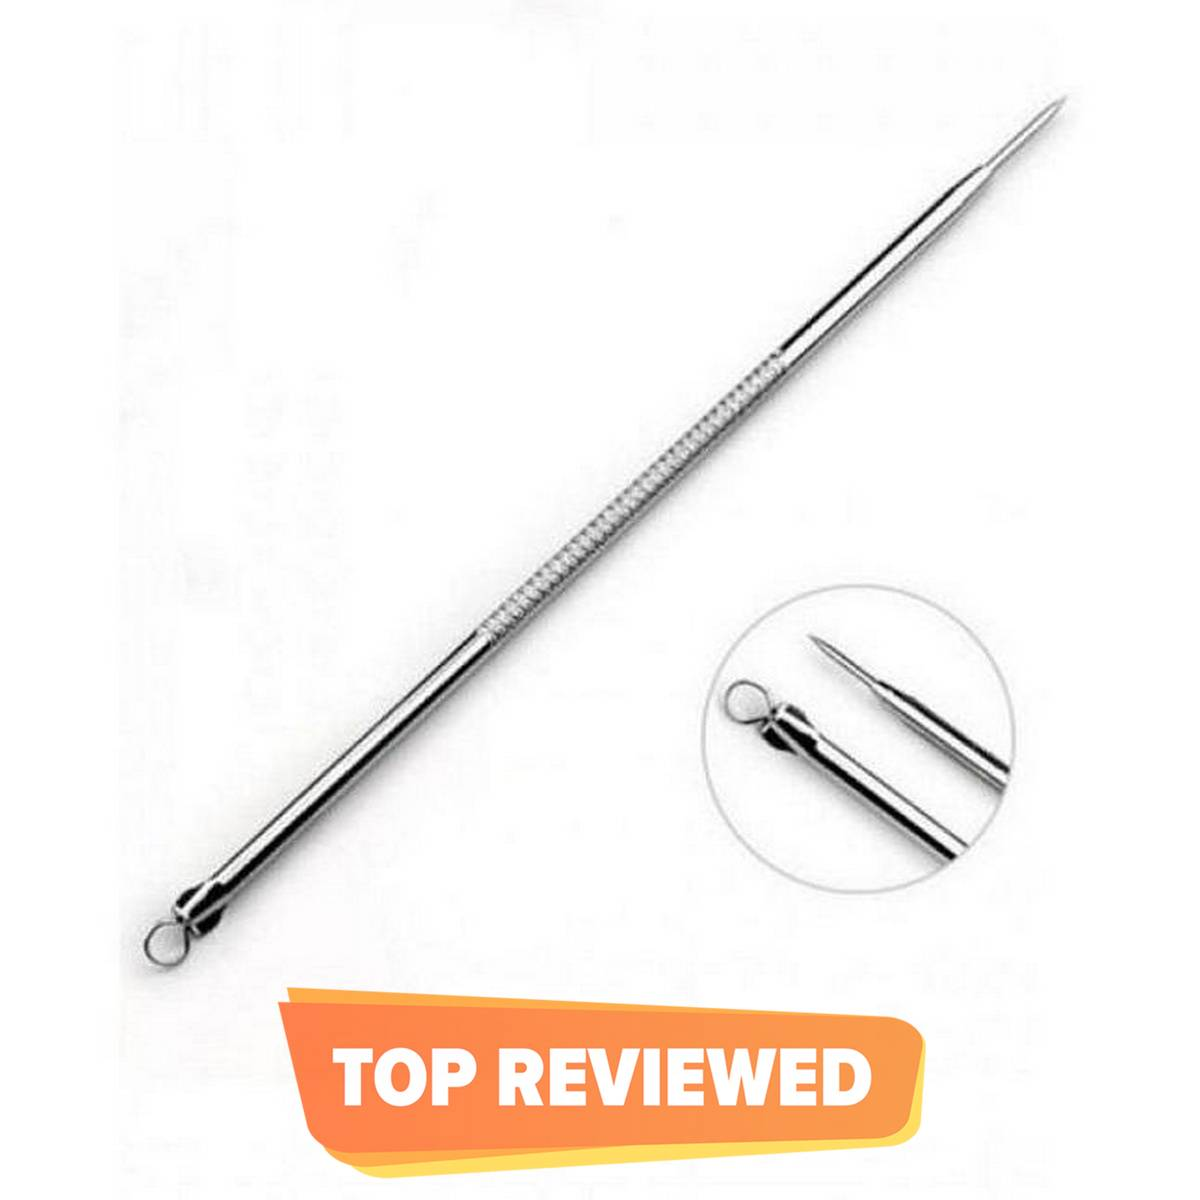 Stainless Steel Blackhead Remover Pin